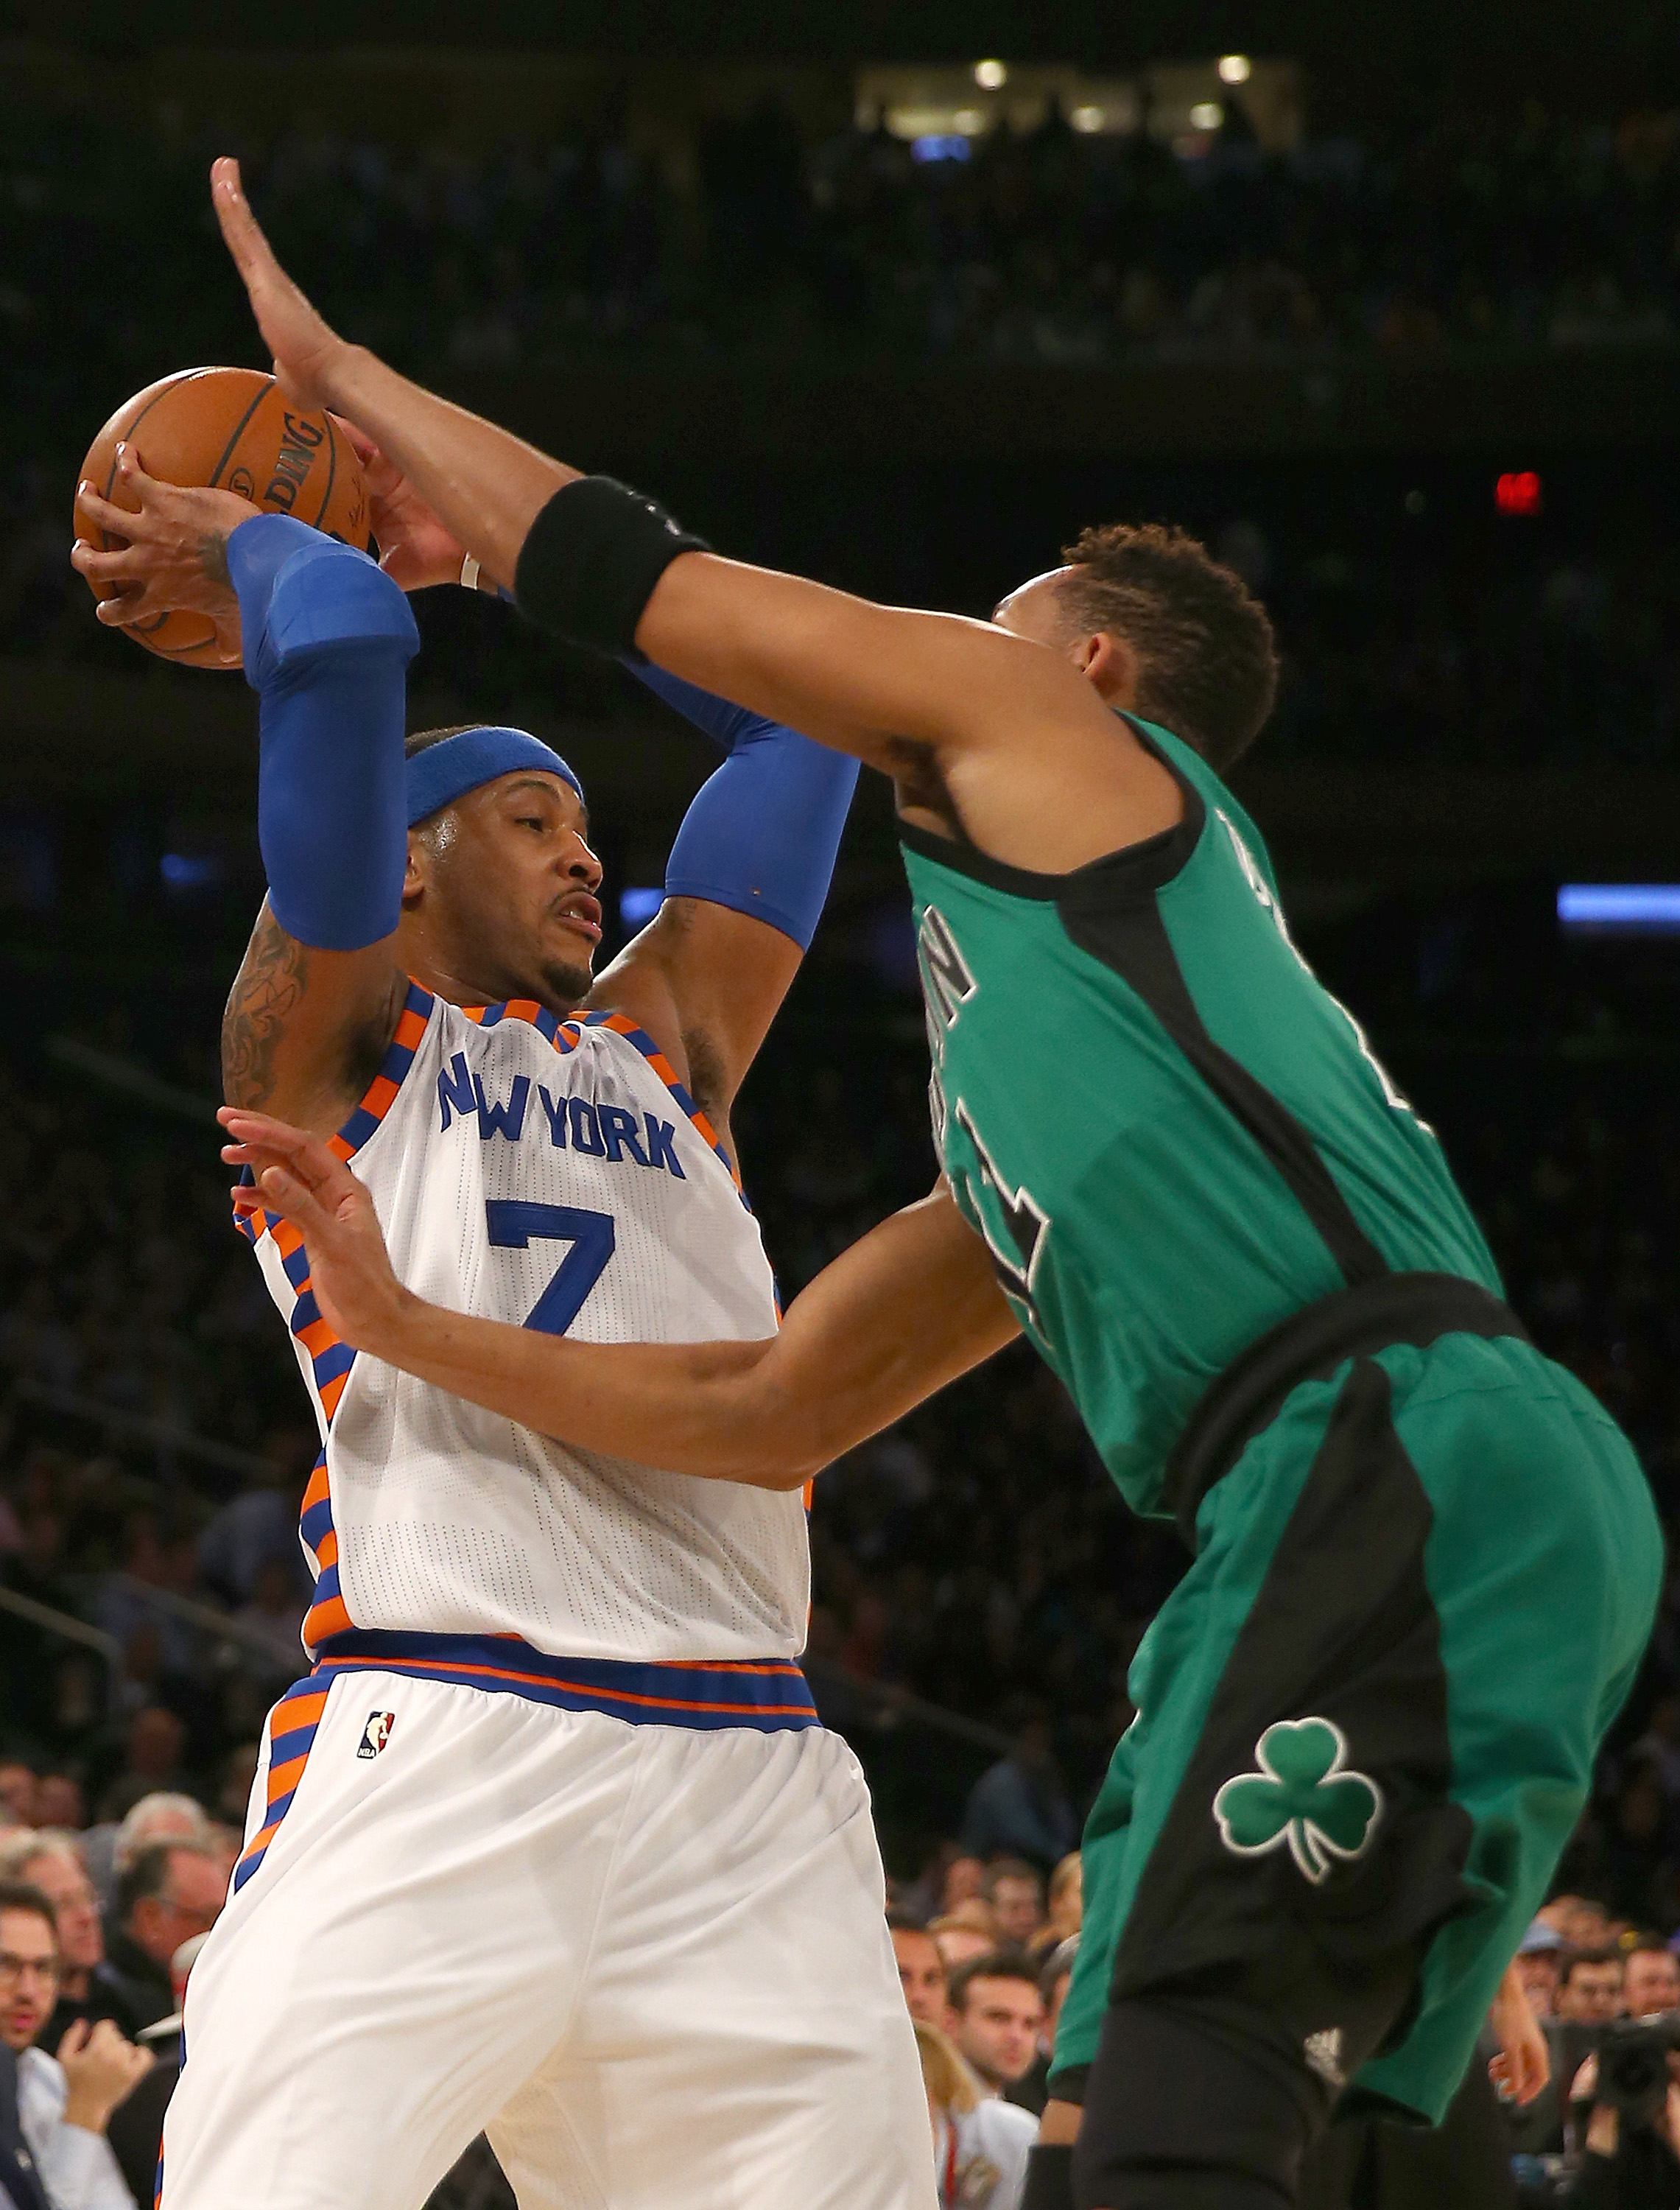 NEW YORK, NY - JANUARY 12:  Carmelo Anthony #7 of the New York Knicks tries to get around Evan Turner #11 of the Boston Celtics in the first half at Madison Square Garden on January 12, 2016 in New York City. (Photo by Elsa/Getty Images)